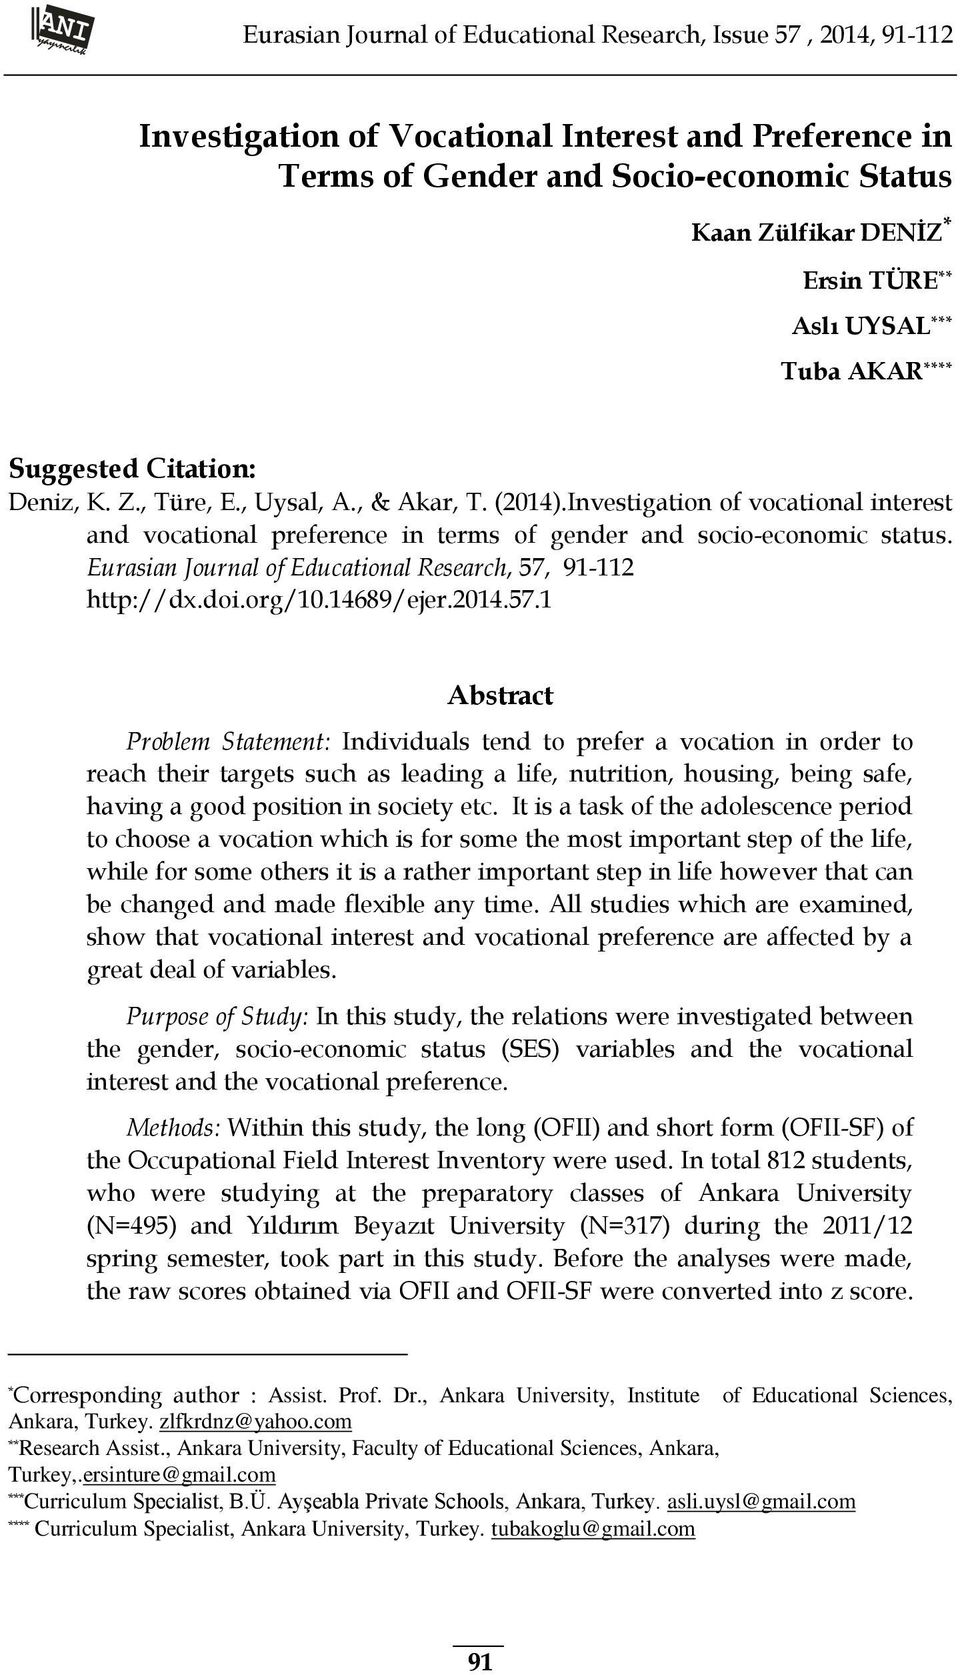 Investigation of vocational interest and vocational preference in terms of gender and socio-economic status. Eurasian Journal of Educational Research, 57, 91-112 http://dx.doi.org/10.14689/ejer.2014.